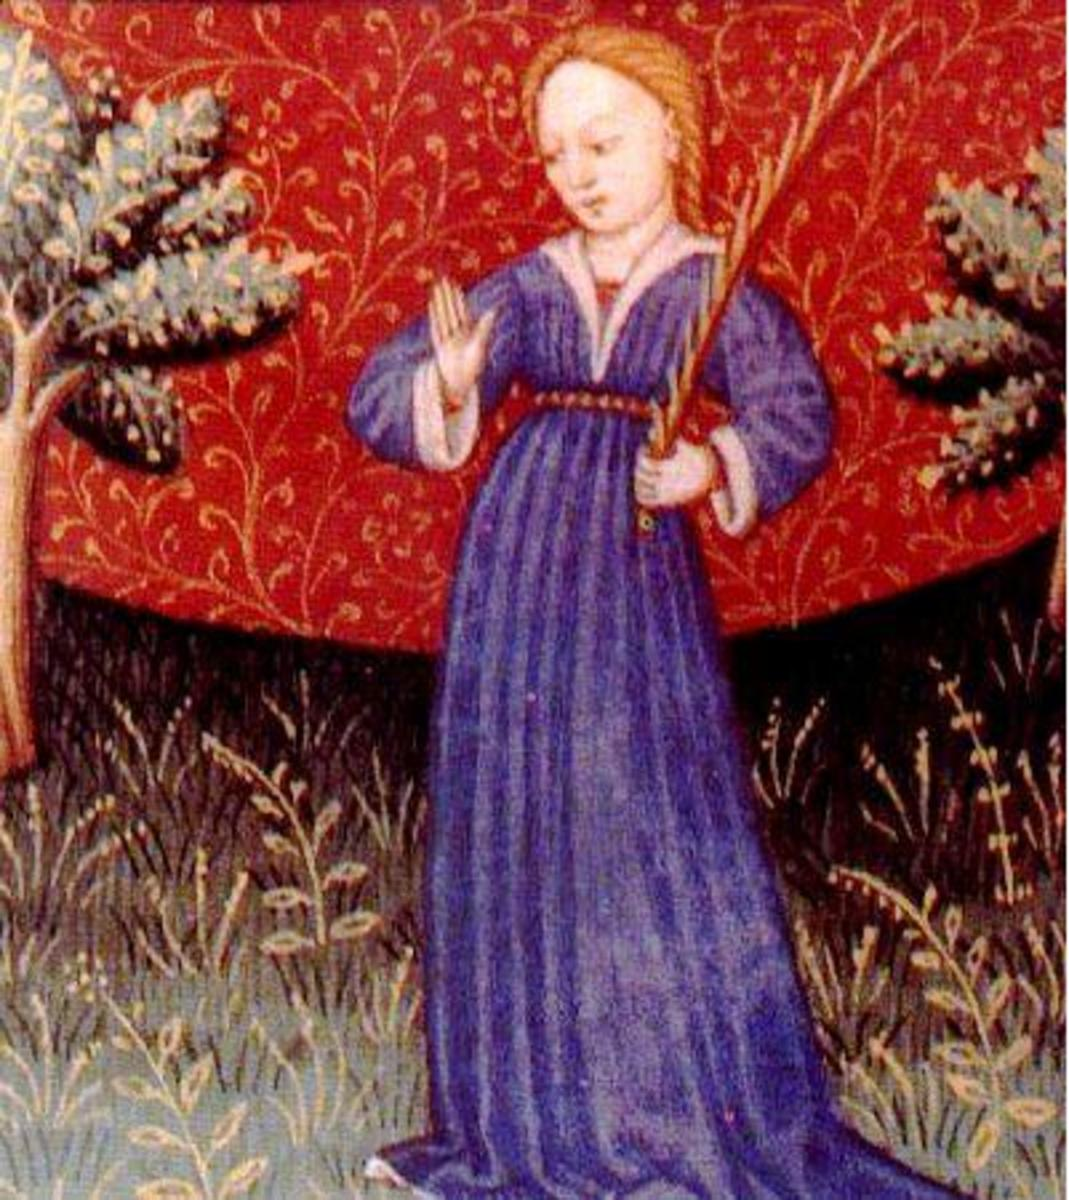 Miss Virgo, the Virgin Maiden will make a great mother and wife.